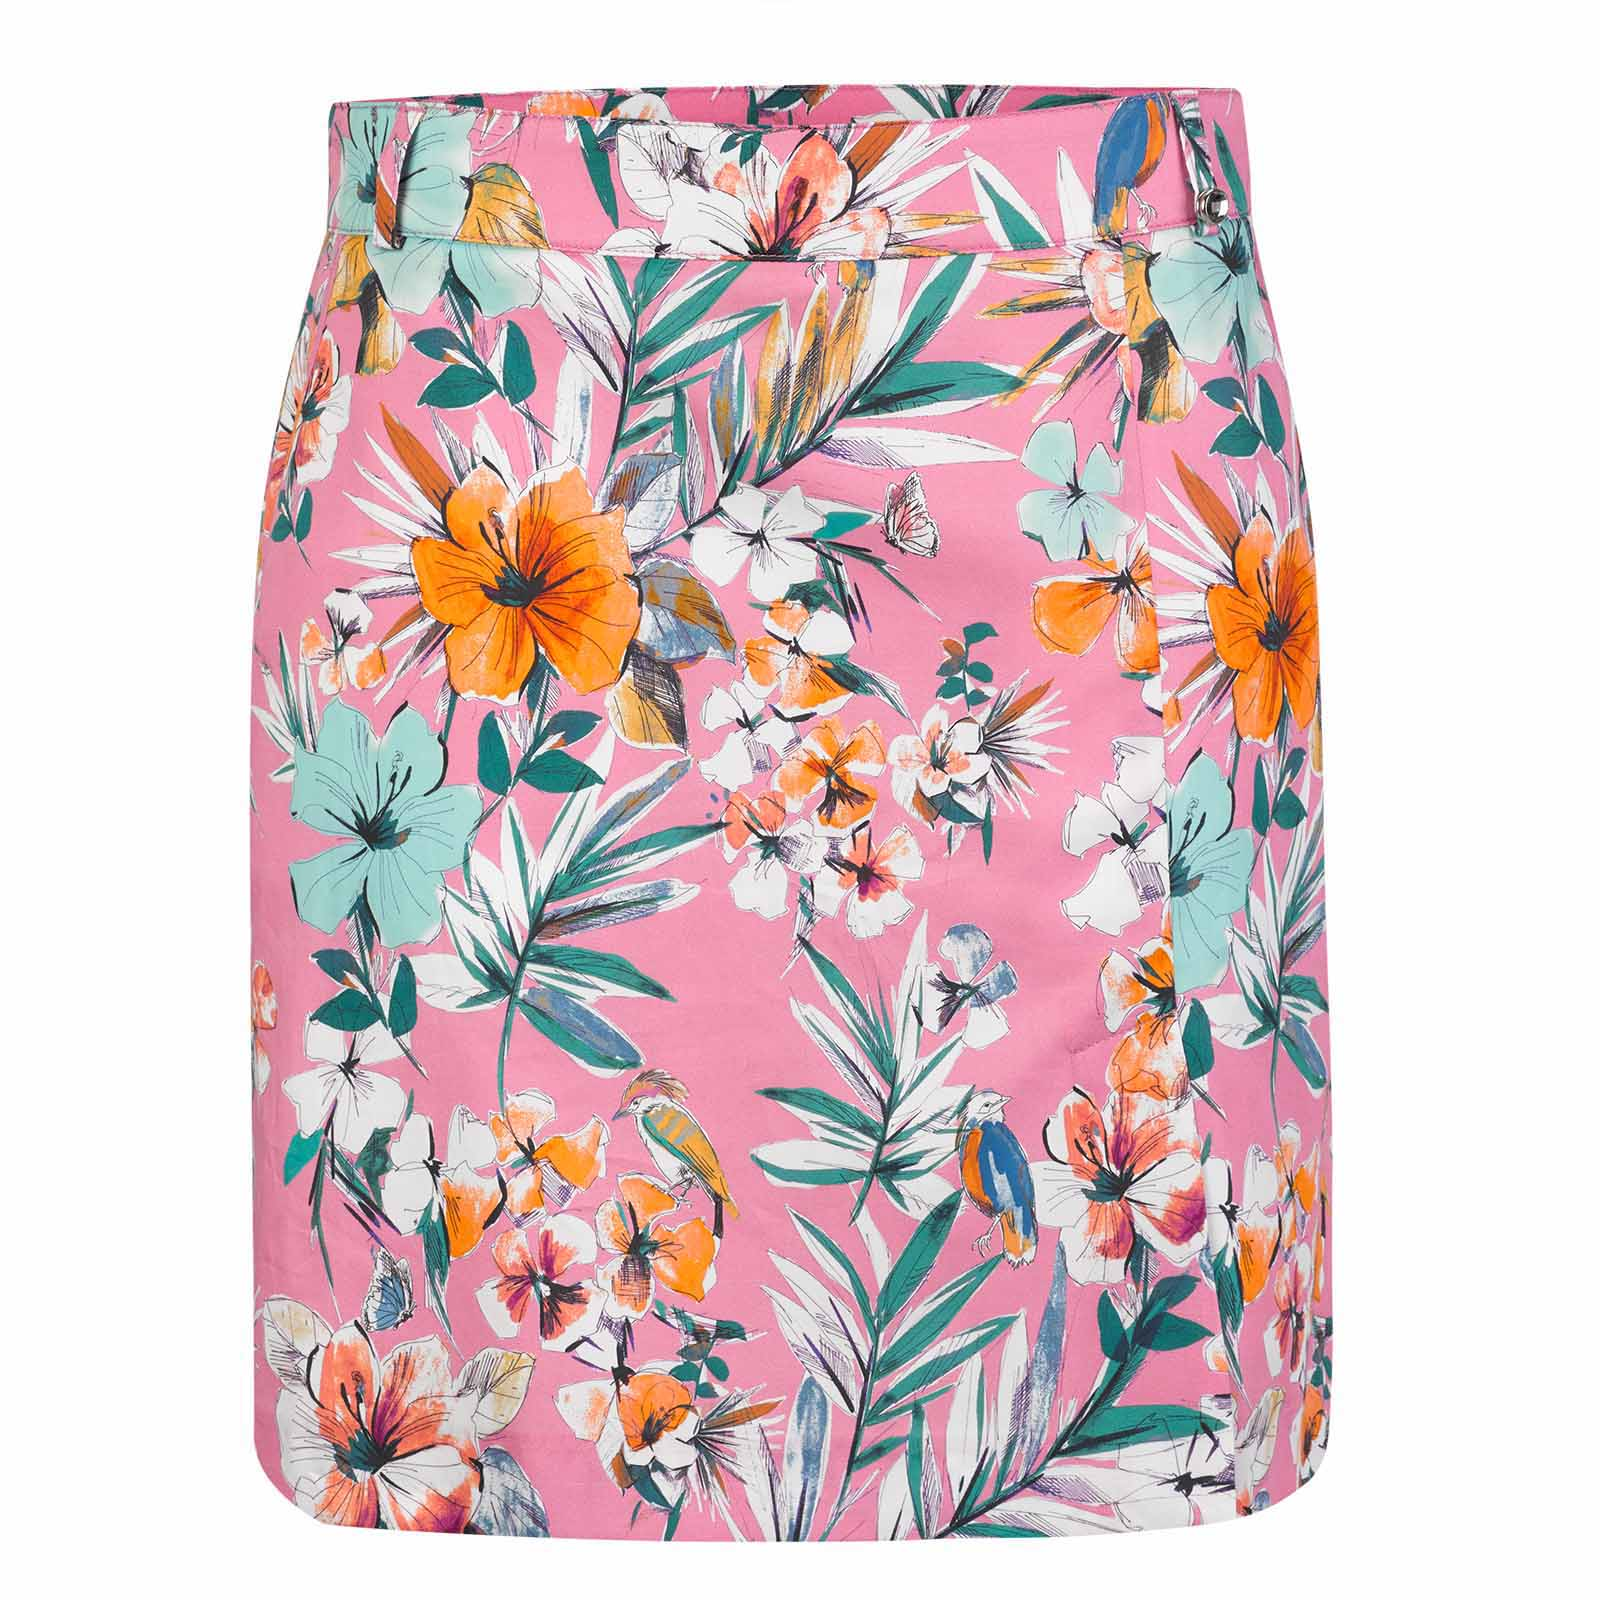 Damen Skort mit Extra Stretch Komfort in Medium Länge aus Baumwoll-Mix